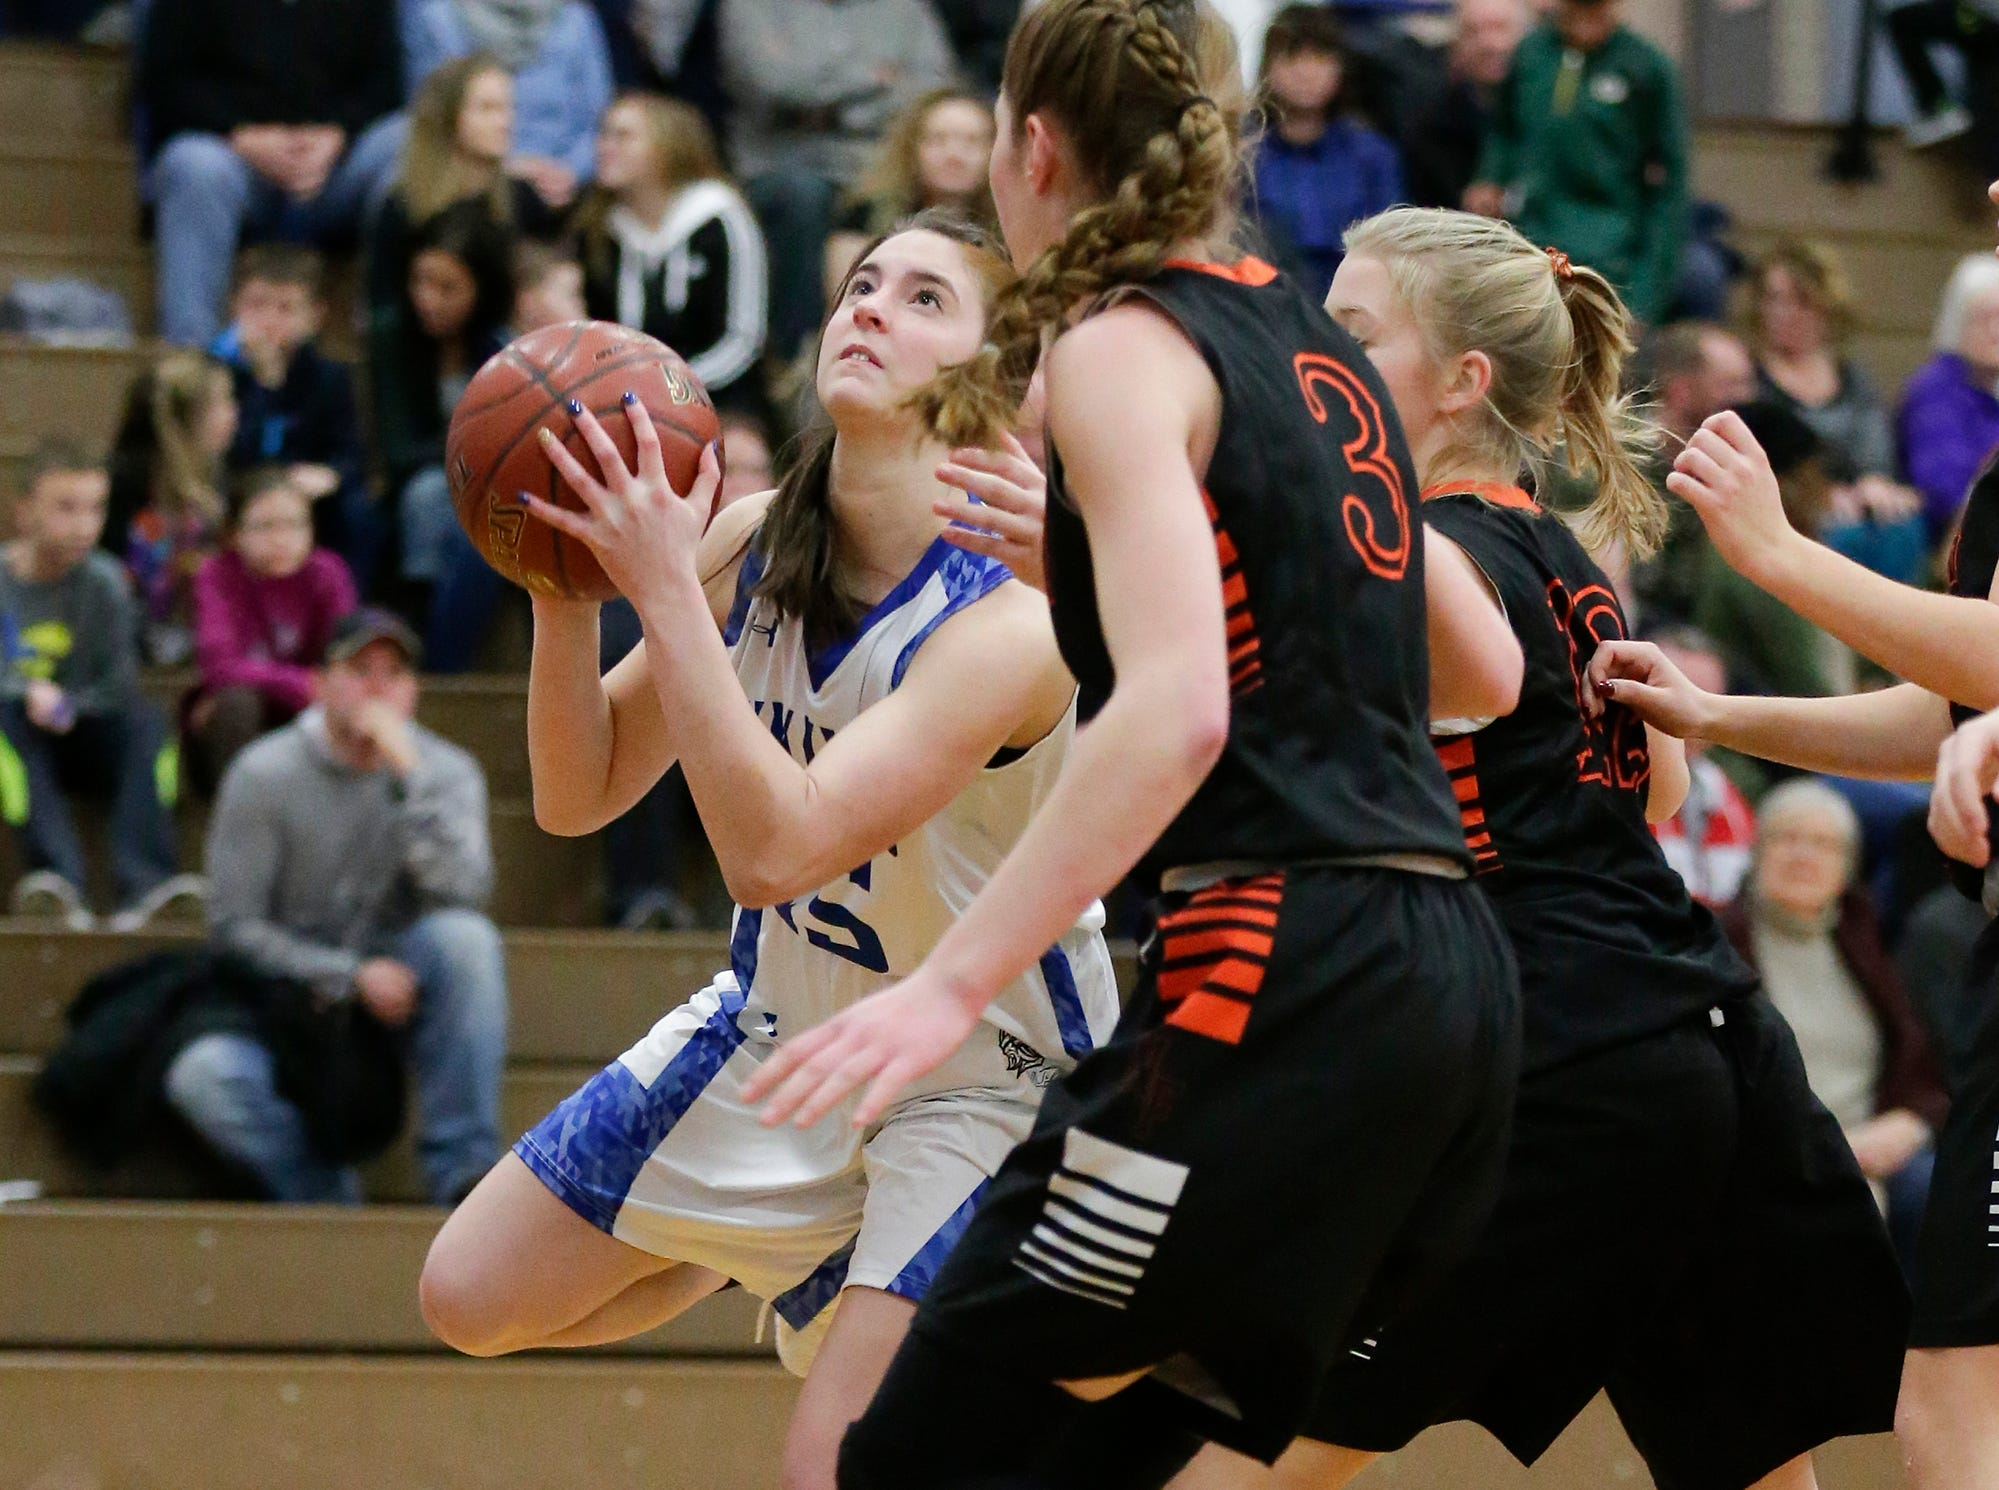 Winnebago Lutheran Academy girls basketball's Geneva Hewitt drives in towards the basket against North Fond du Lac High School January 10, 2019 during their game in Fond du Lac. Doug Raflik/USA TODAY NETWORK-Wisconsin